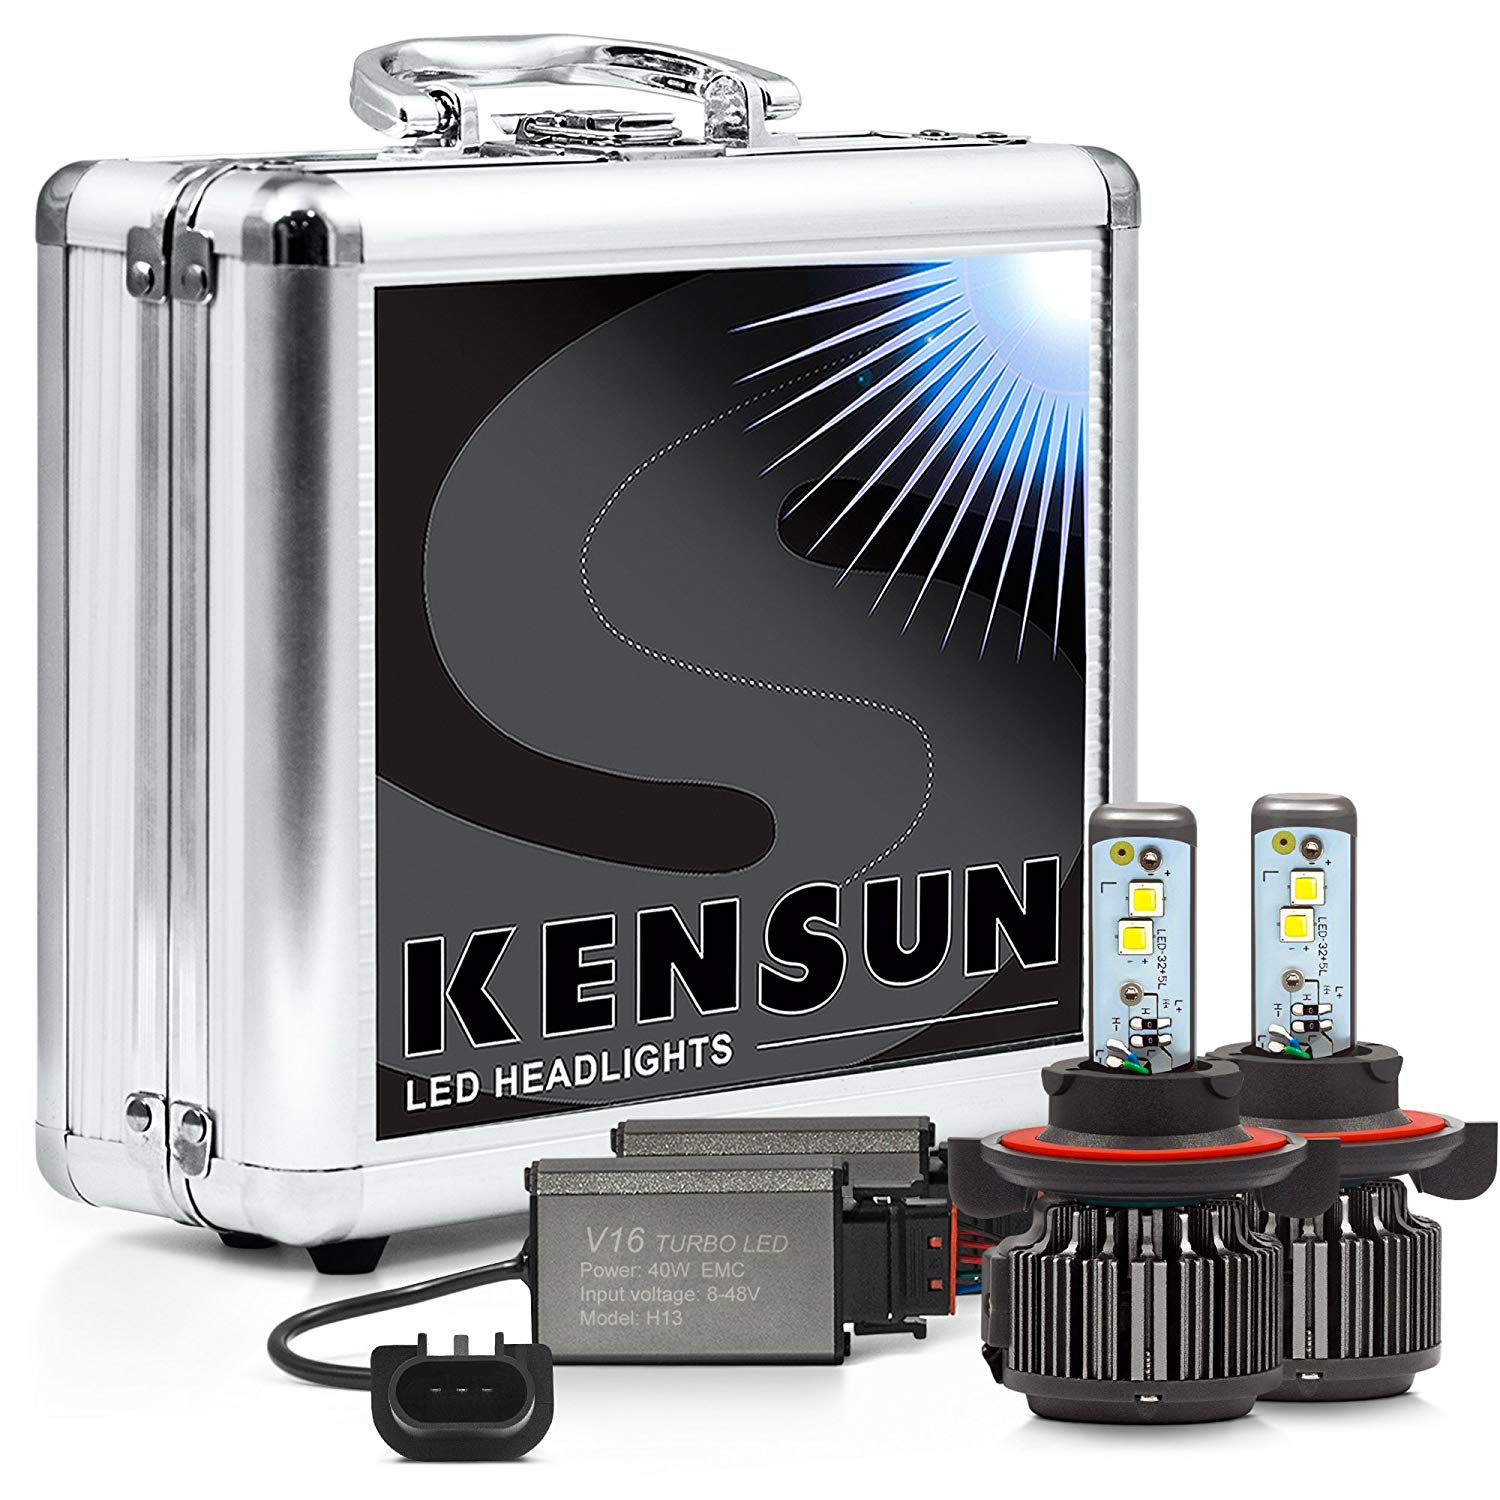 Kensun Super Bright Extreme Cree LED Headlight Conversion Kit